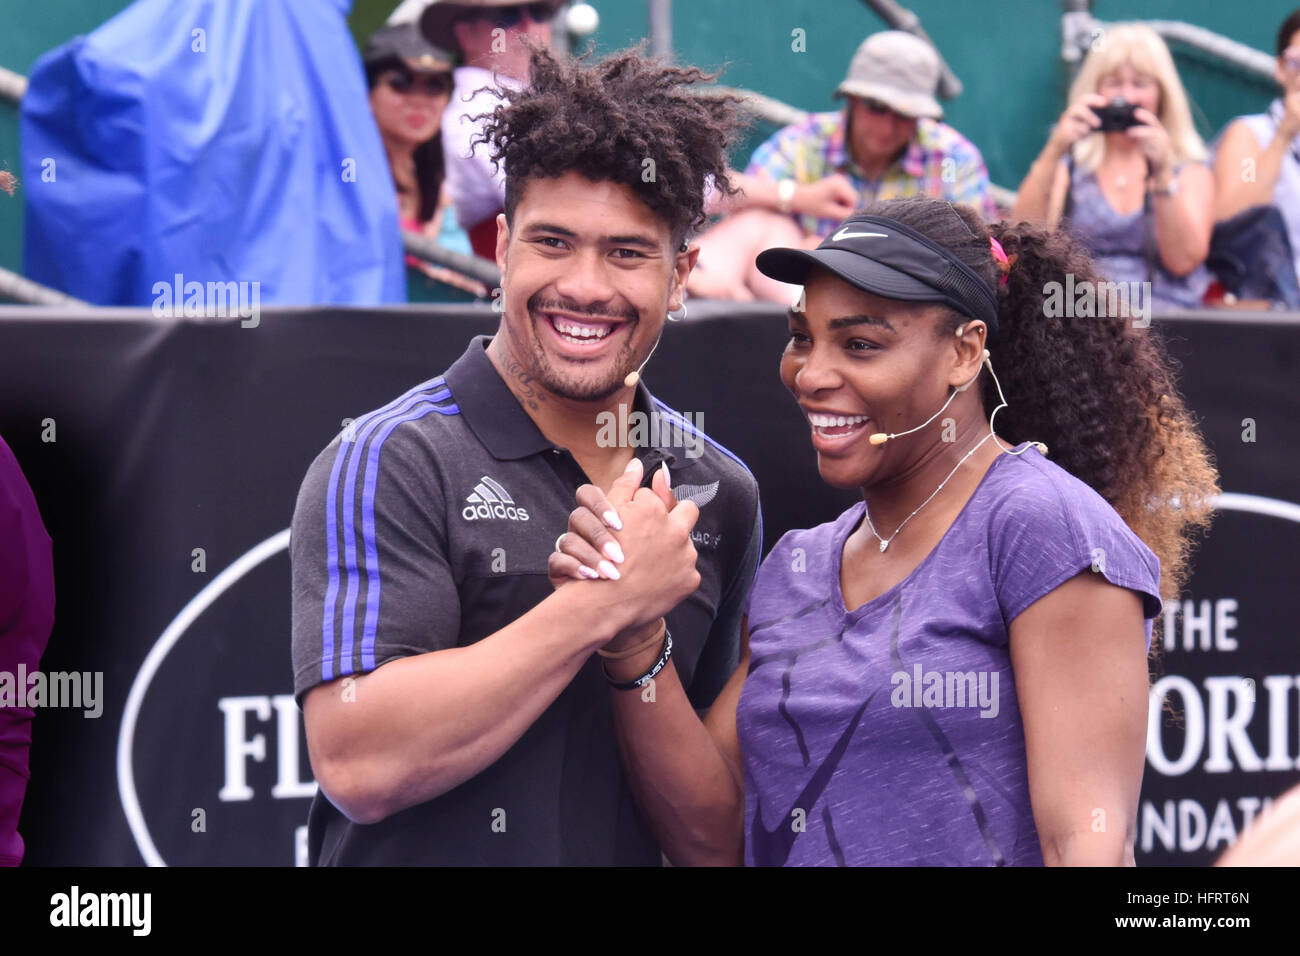 Auckland, New Zealand. 01st Jan, 2017. Tennis superstar Serena Williams and All Blacks rugby star Ardie Savea during - Stock Image